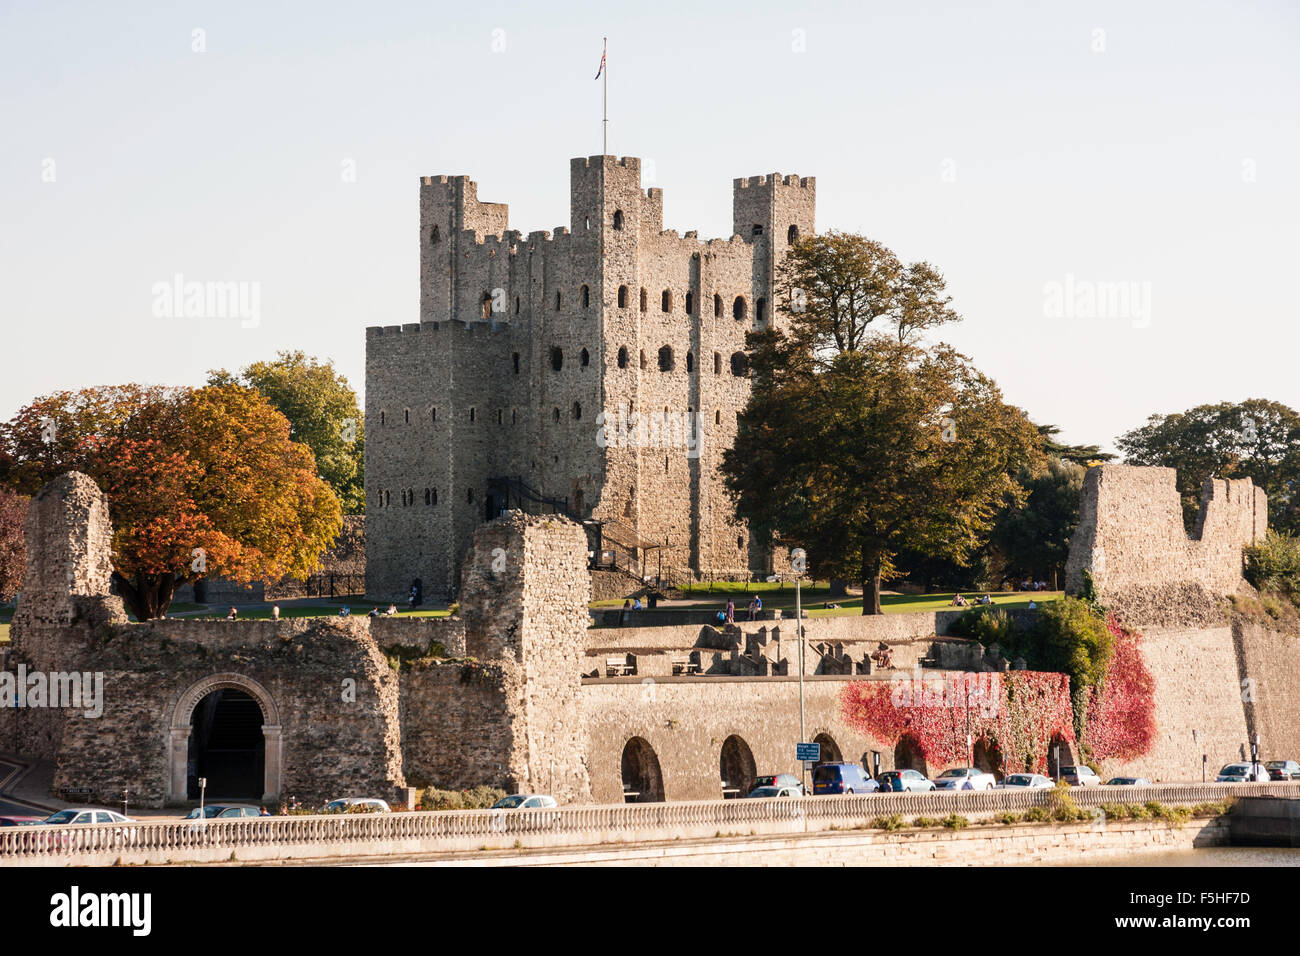 England, Rochester Castle. River view. Main curtain wall with towers and gatehouse, keep on small hill behind. Blue - Stock Image